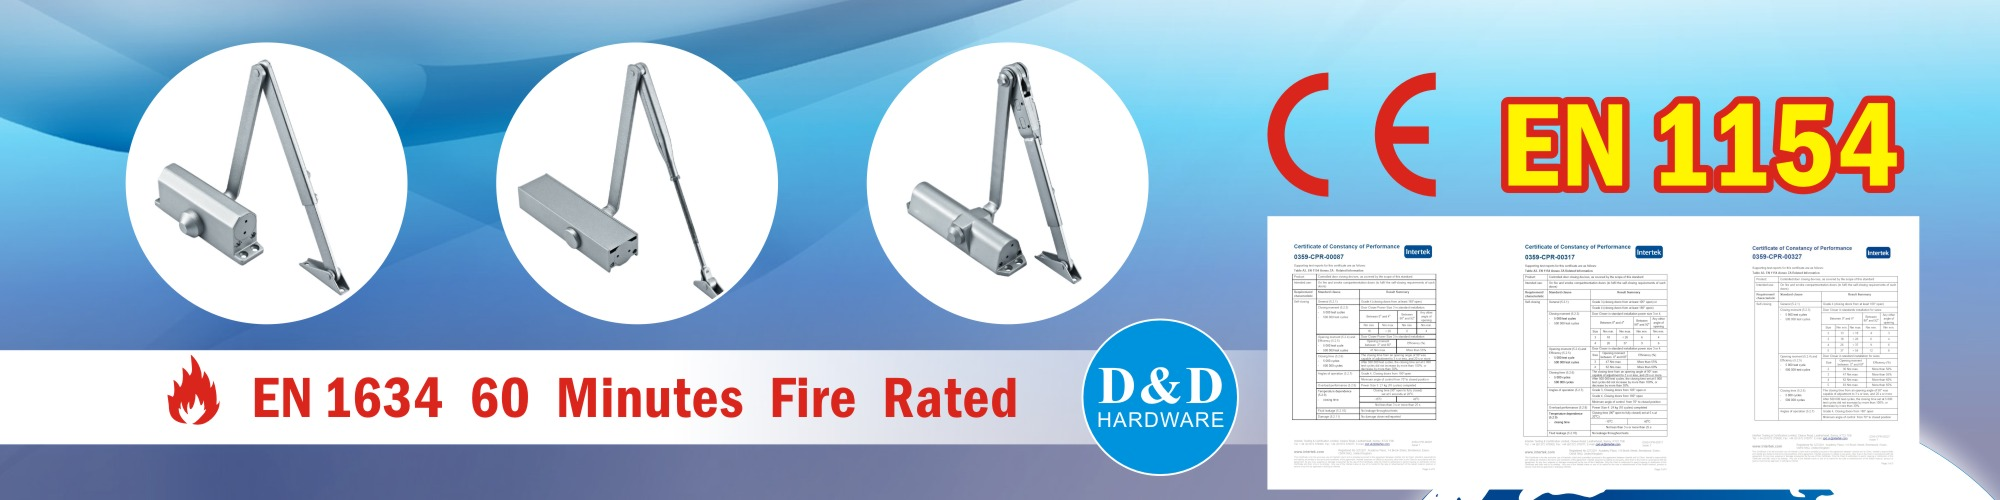 Door Closer with CE certificate, dndhardware.com